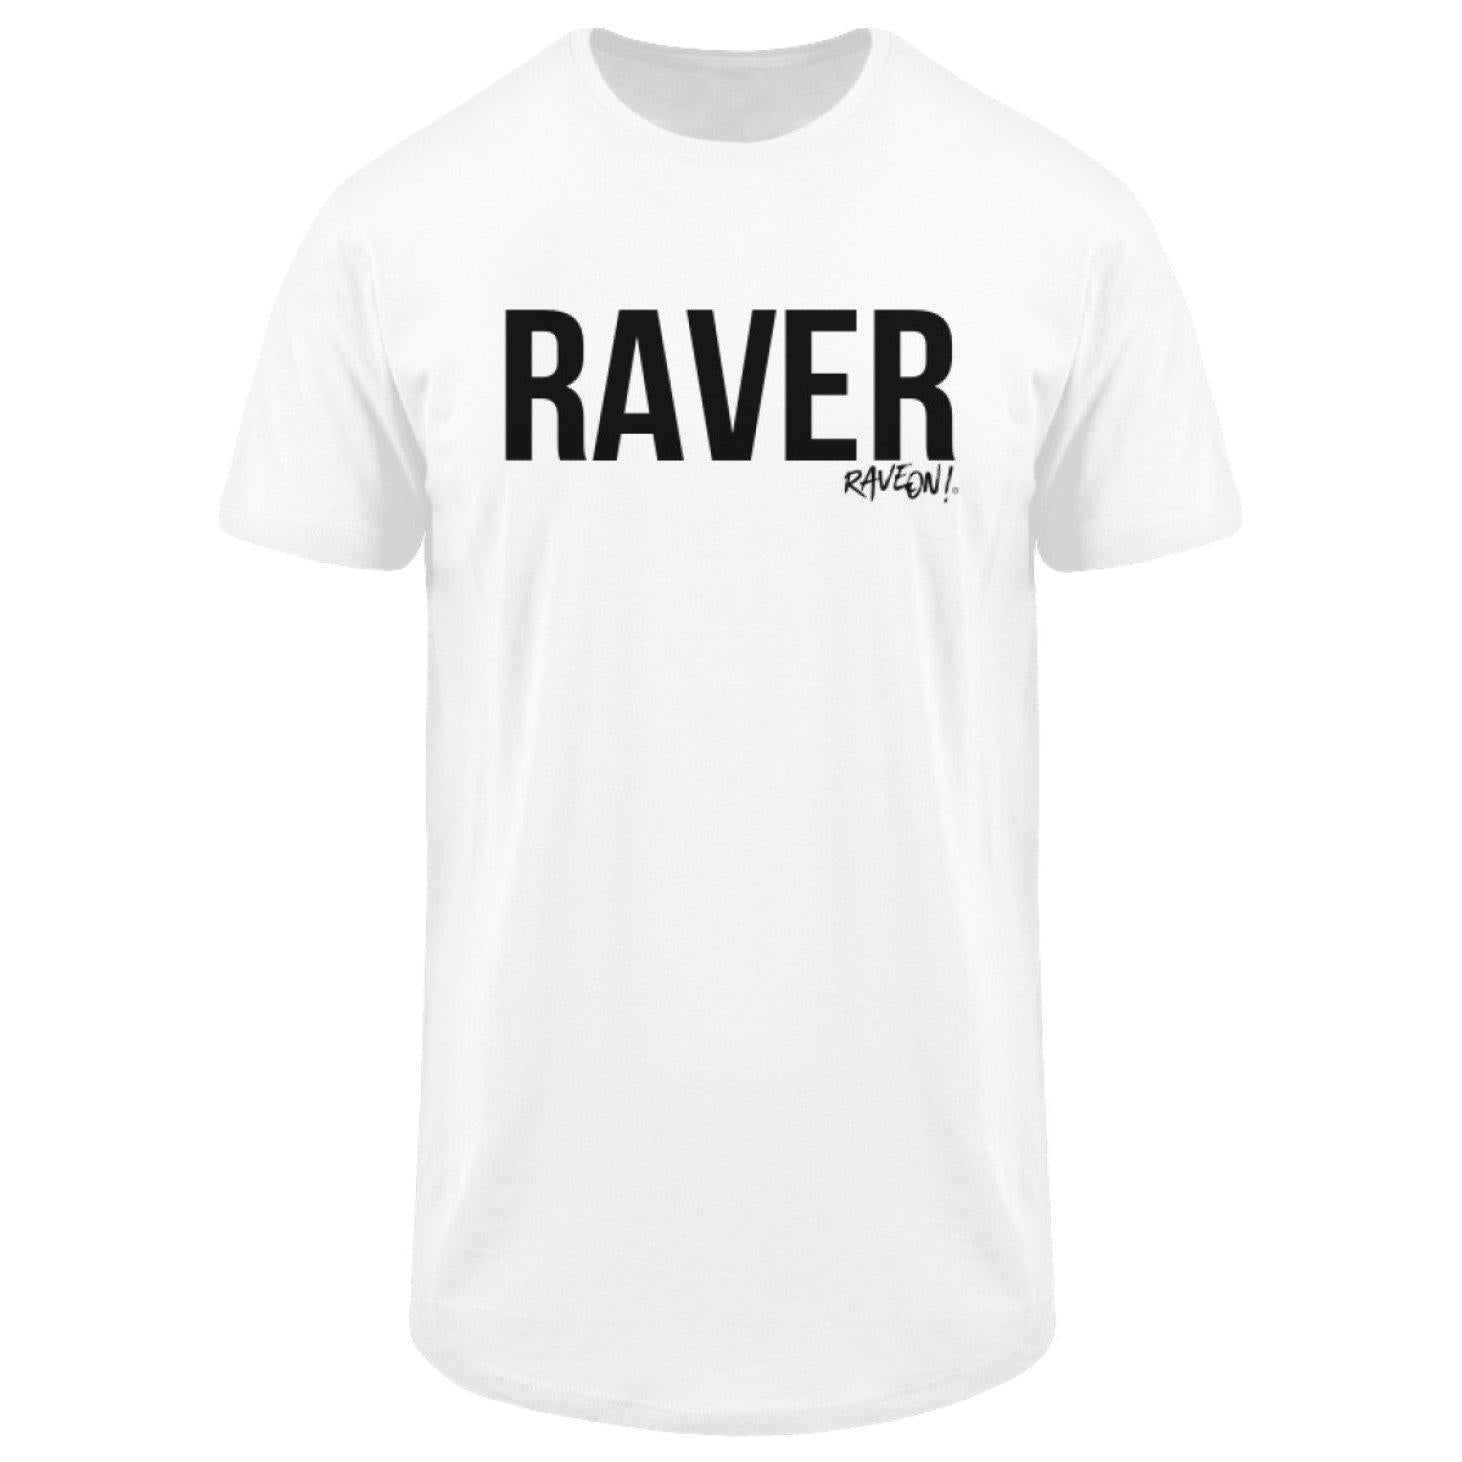 "Stylisches Rave On!® ""Raver"" Shirt w - Herren Long Tee Men Long Tee White / S - Rave On!® der Club & Techno Szene Shop für Coole Junge Mode Streetwear Style & Fashion Outfits + Sexy Festival 420 Stuff"